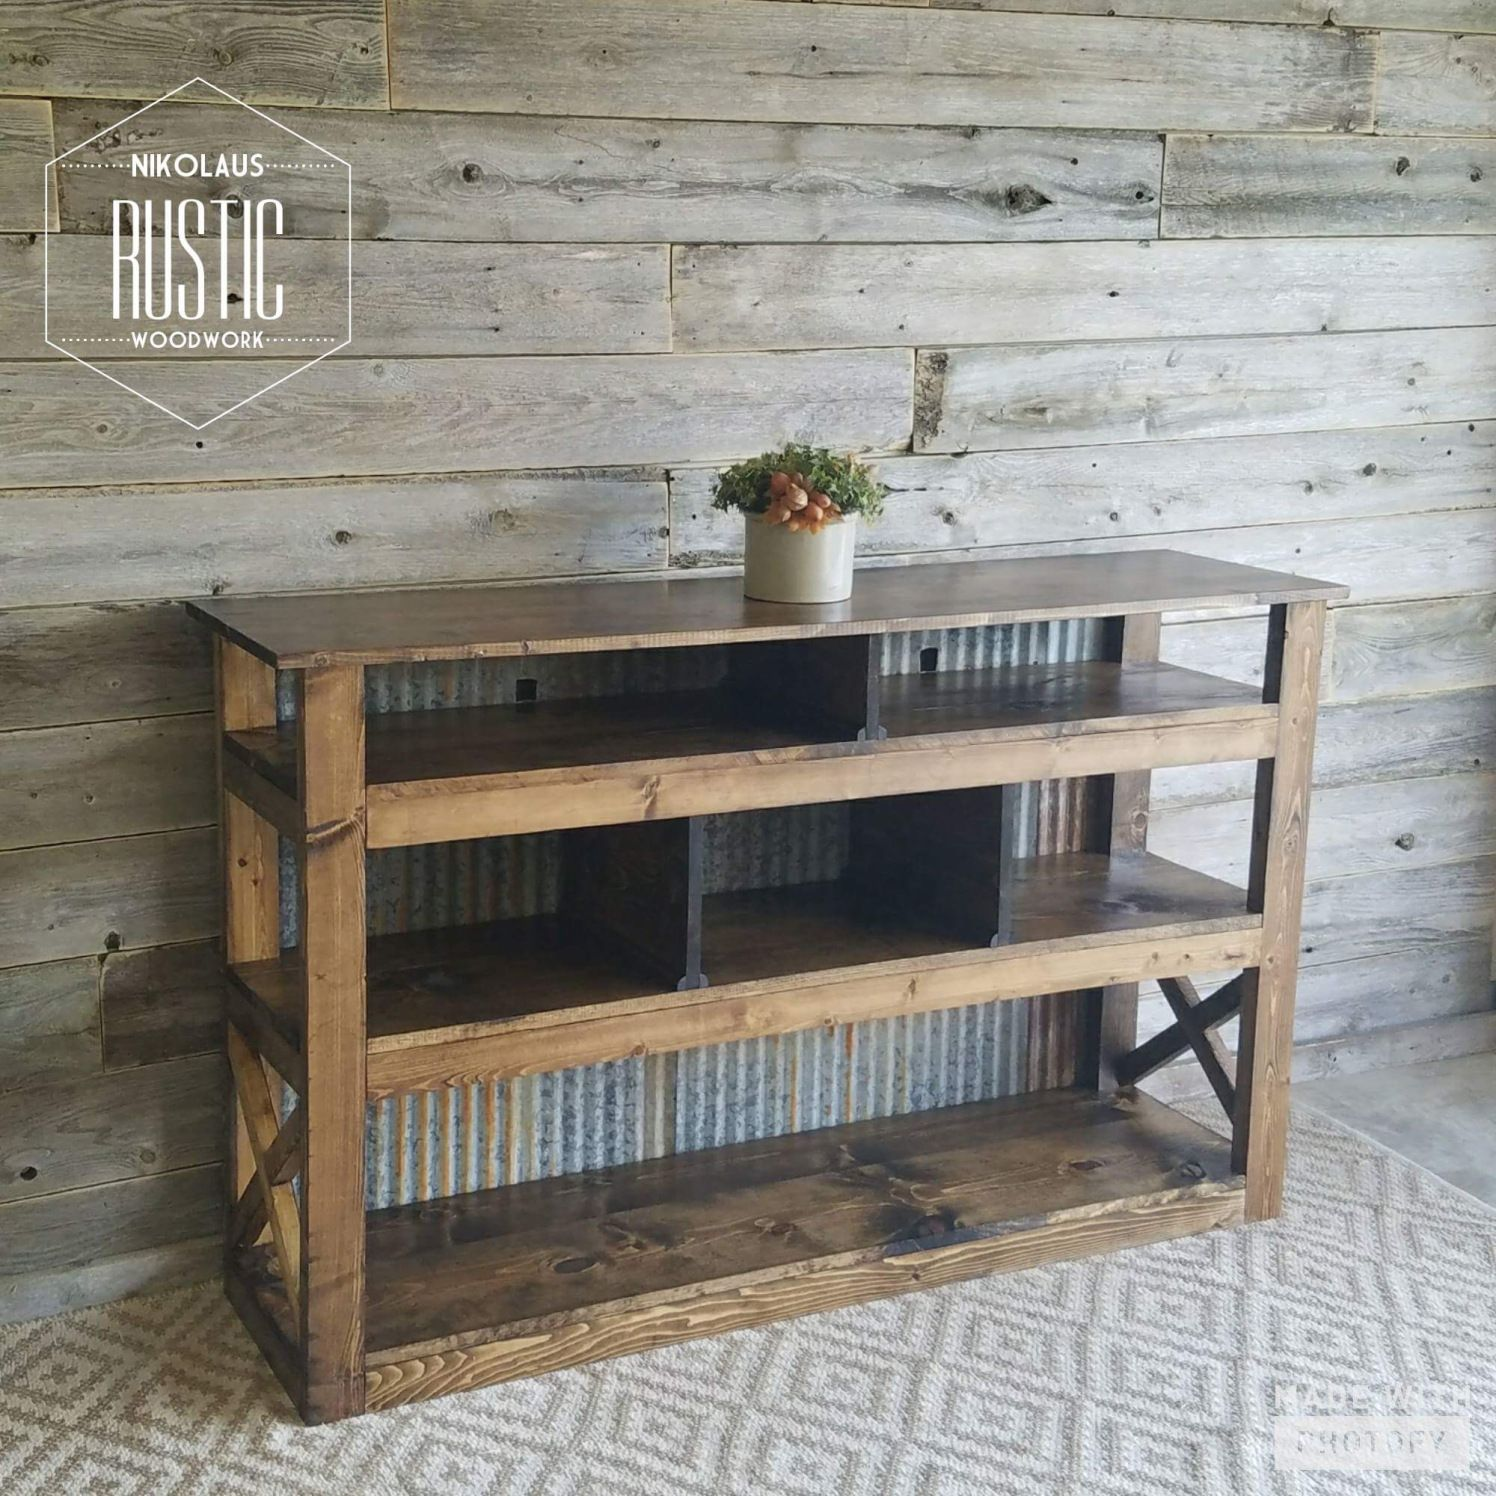 Rustic console table with x details steel backing nikolaus rustic console table with x details steel backing geotapseo Choice Image